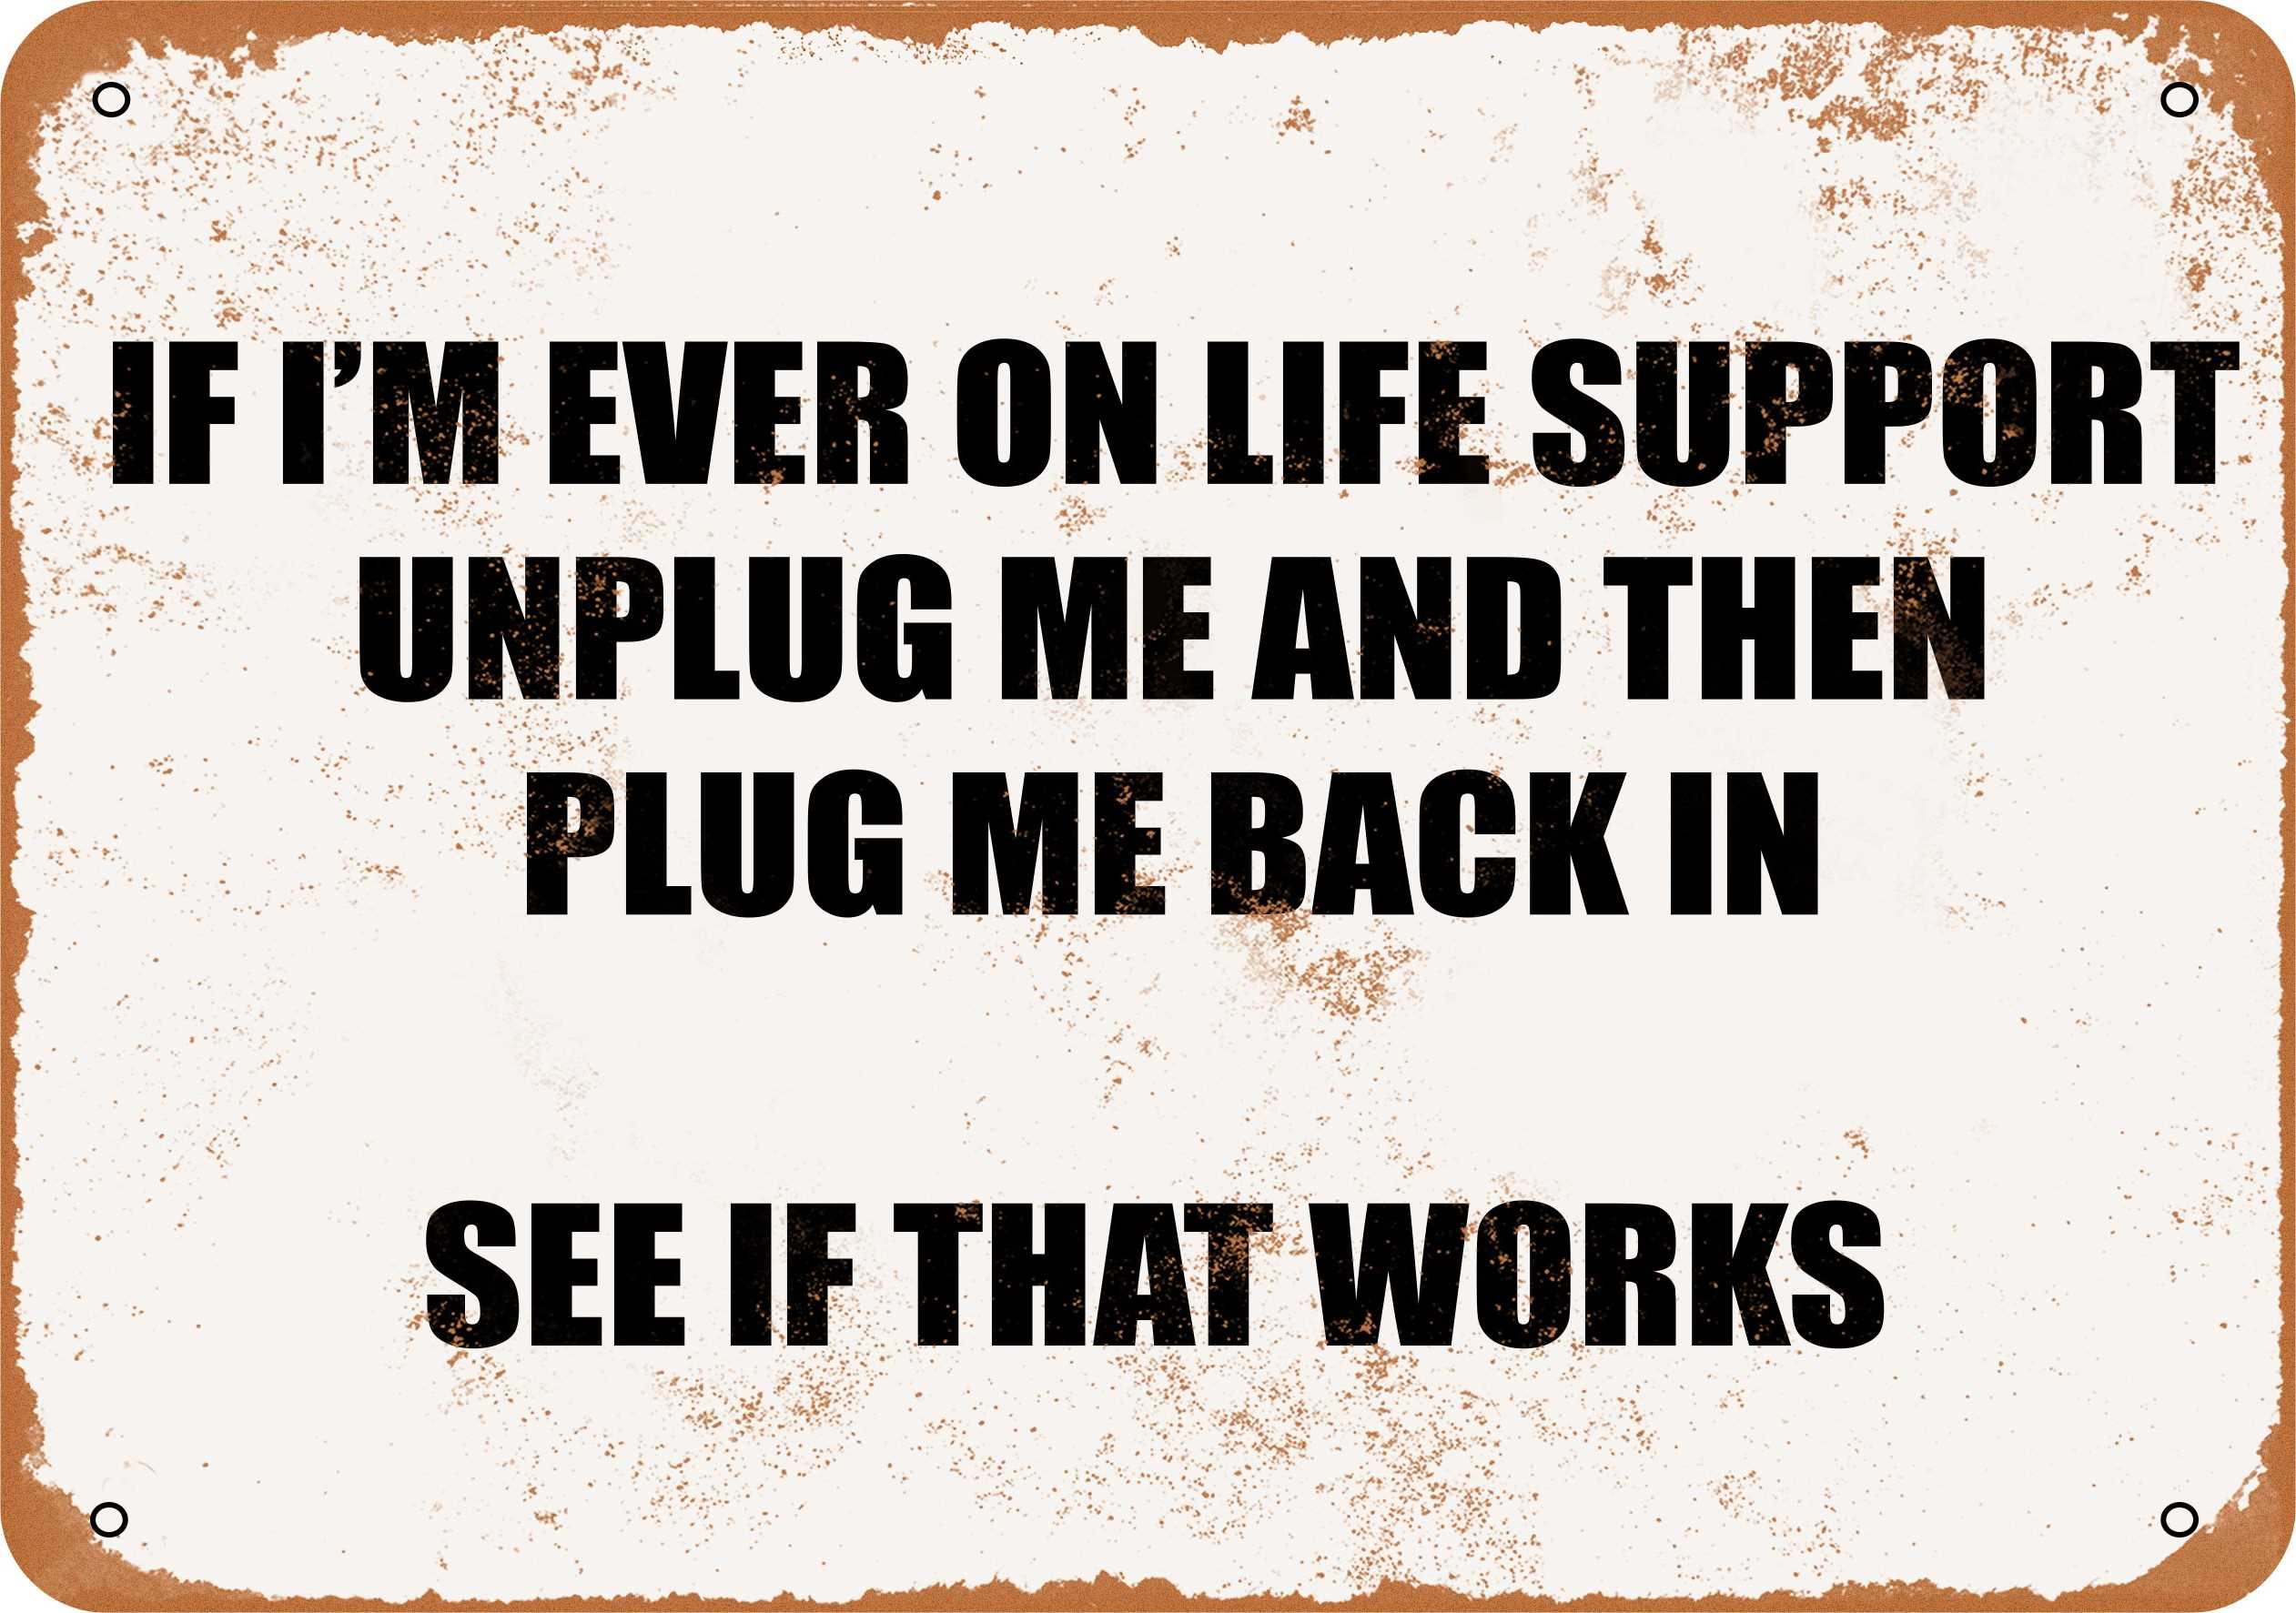 "7"" x 10"" IF I'M EVER ON LIFE SUPPORT UNPLUG ME THEN PLUG ME BACK IN SEE IF THAT WORKS Vintage Look Metal Sign F4804"